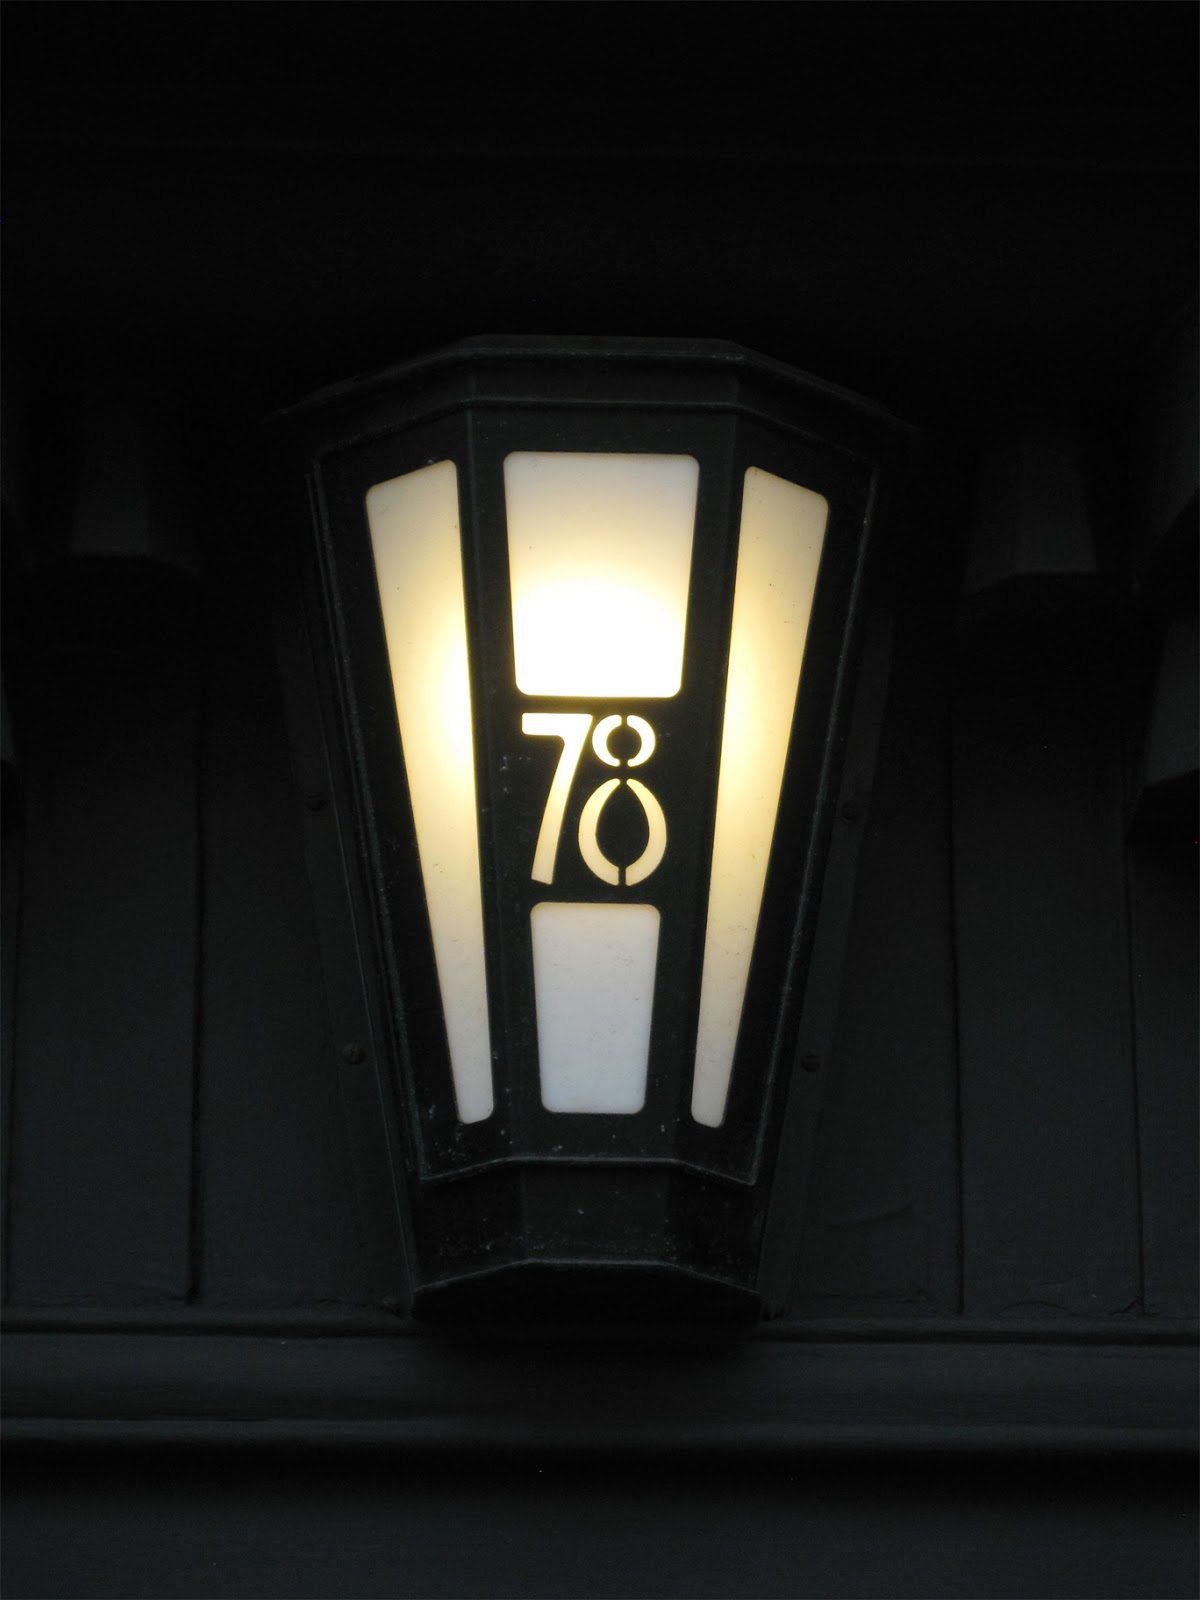 Studio tomas king charles rennie mackintosh and 78 derngate for Dining room 78 derngate